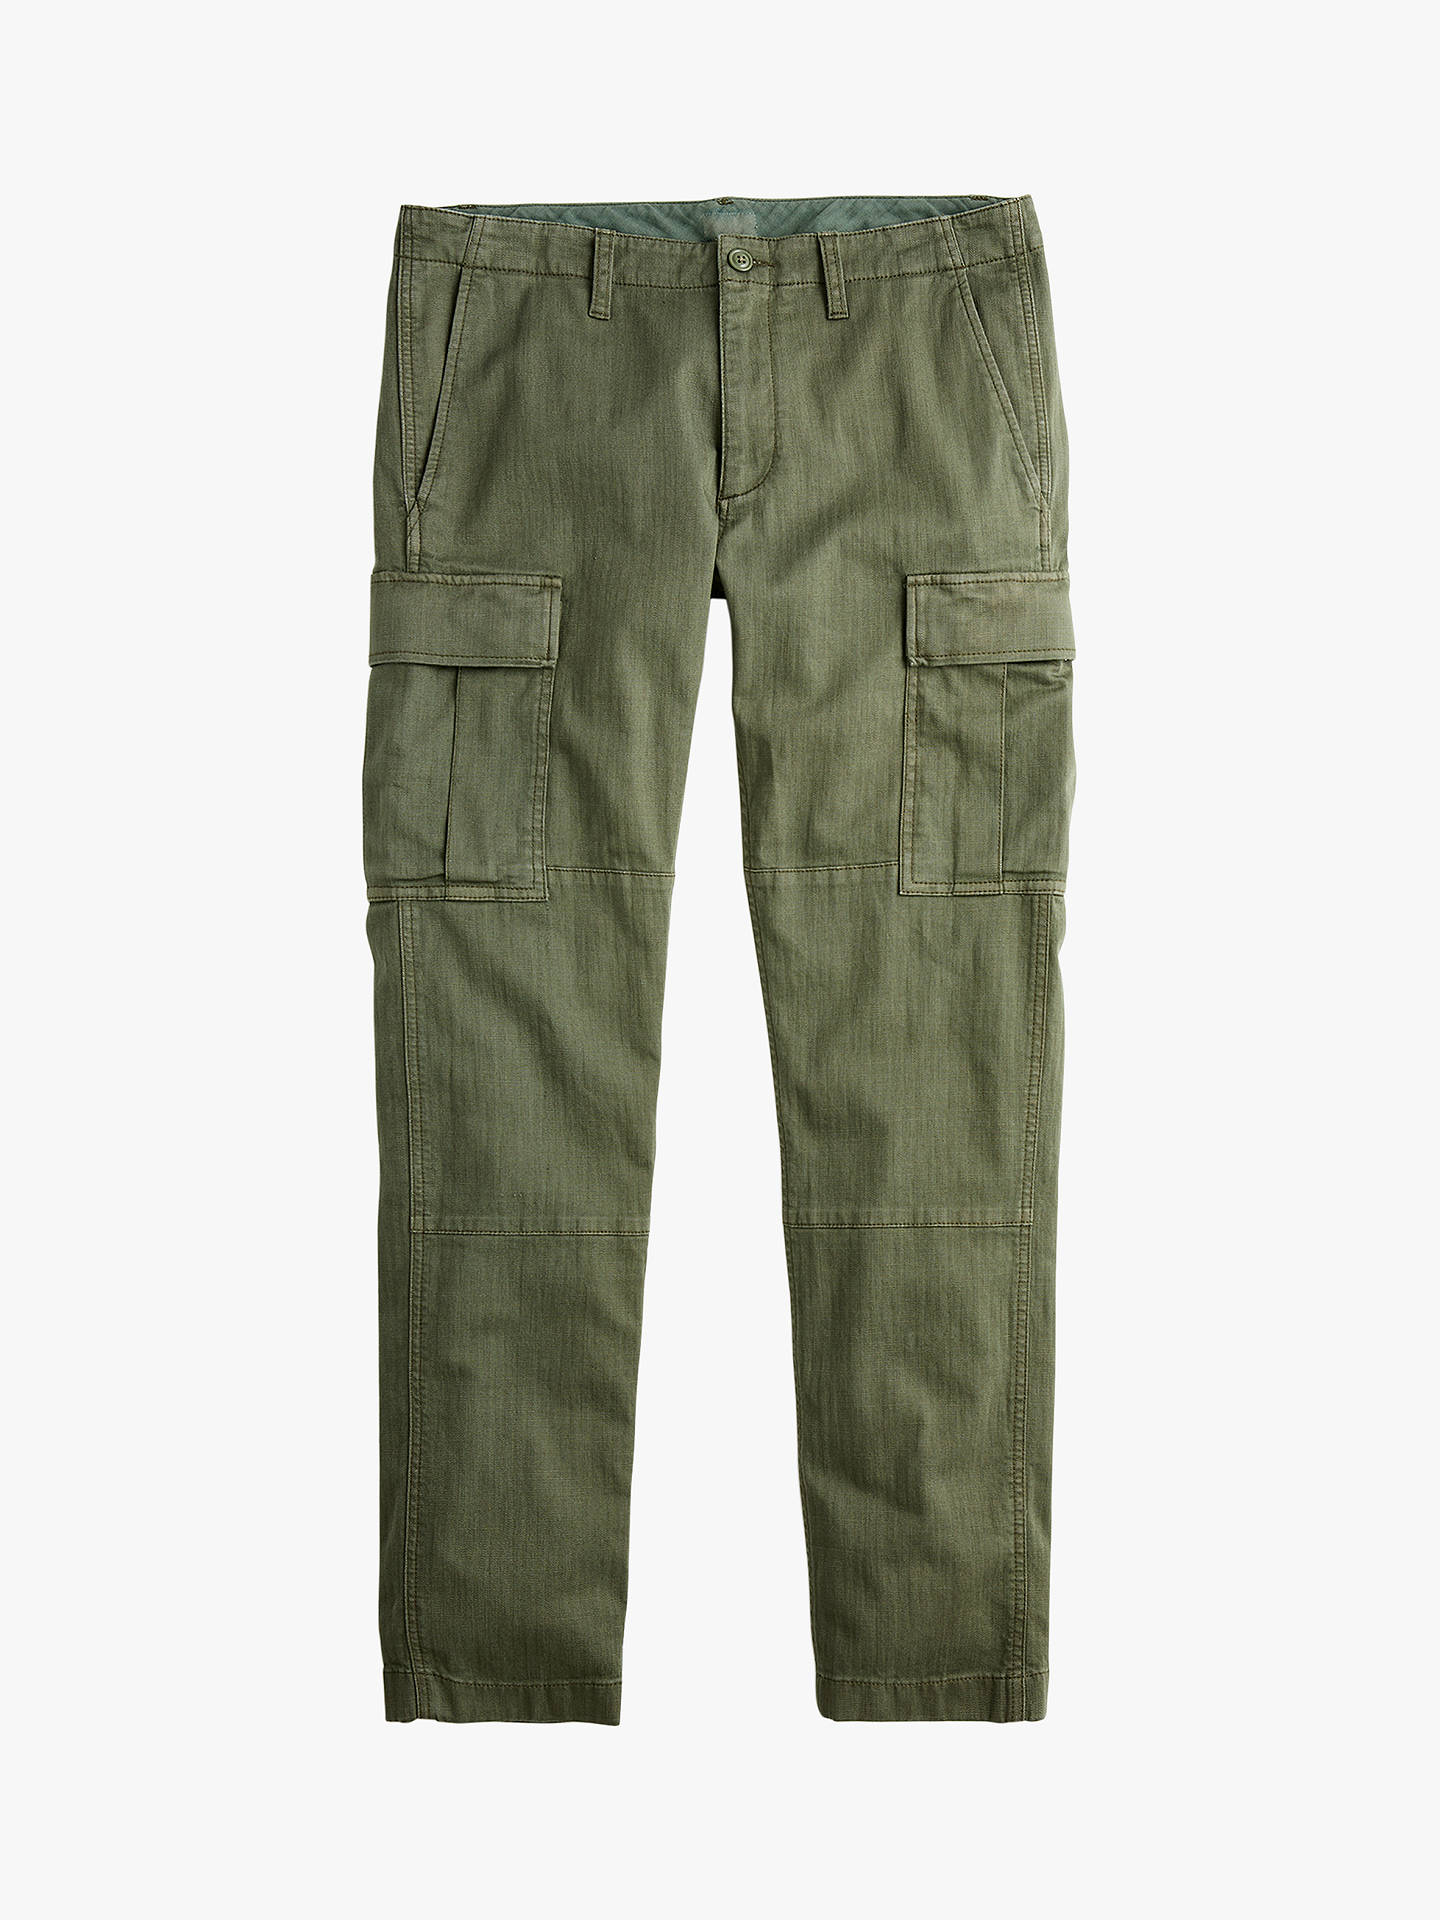 1d303f6790fbac Buy J.Crew Slim Fit Cargo Trousers, Olive Green, 29R Online at johnlewis